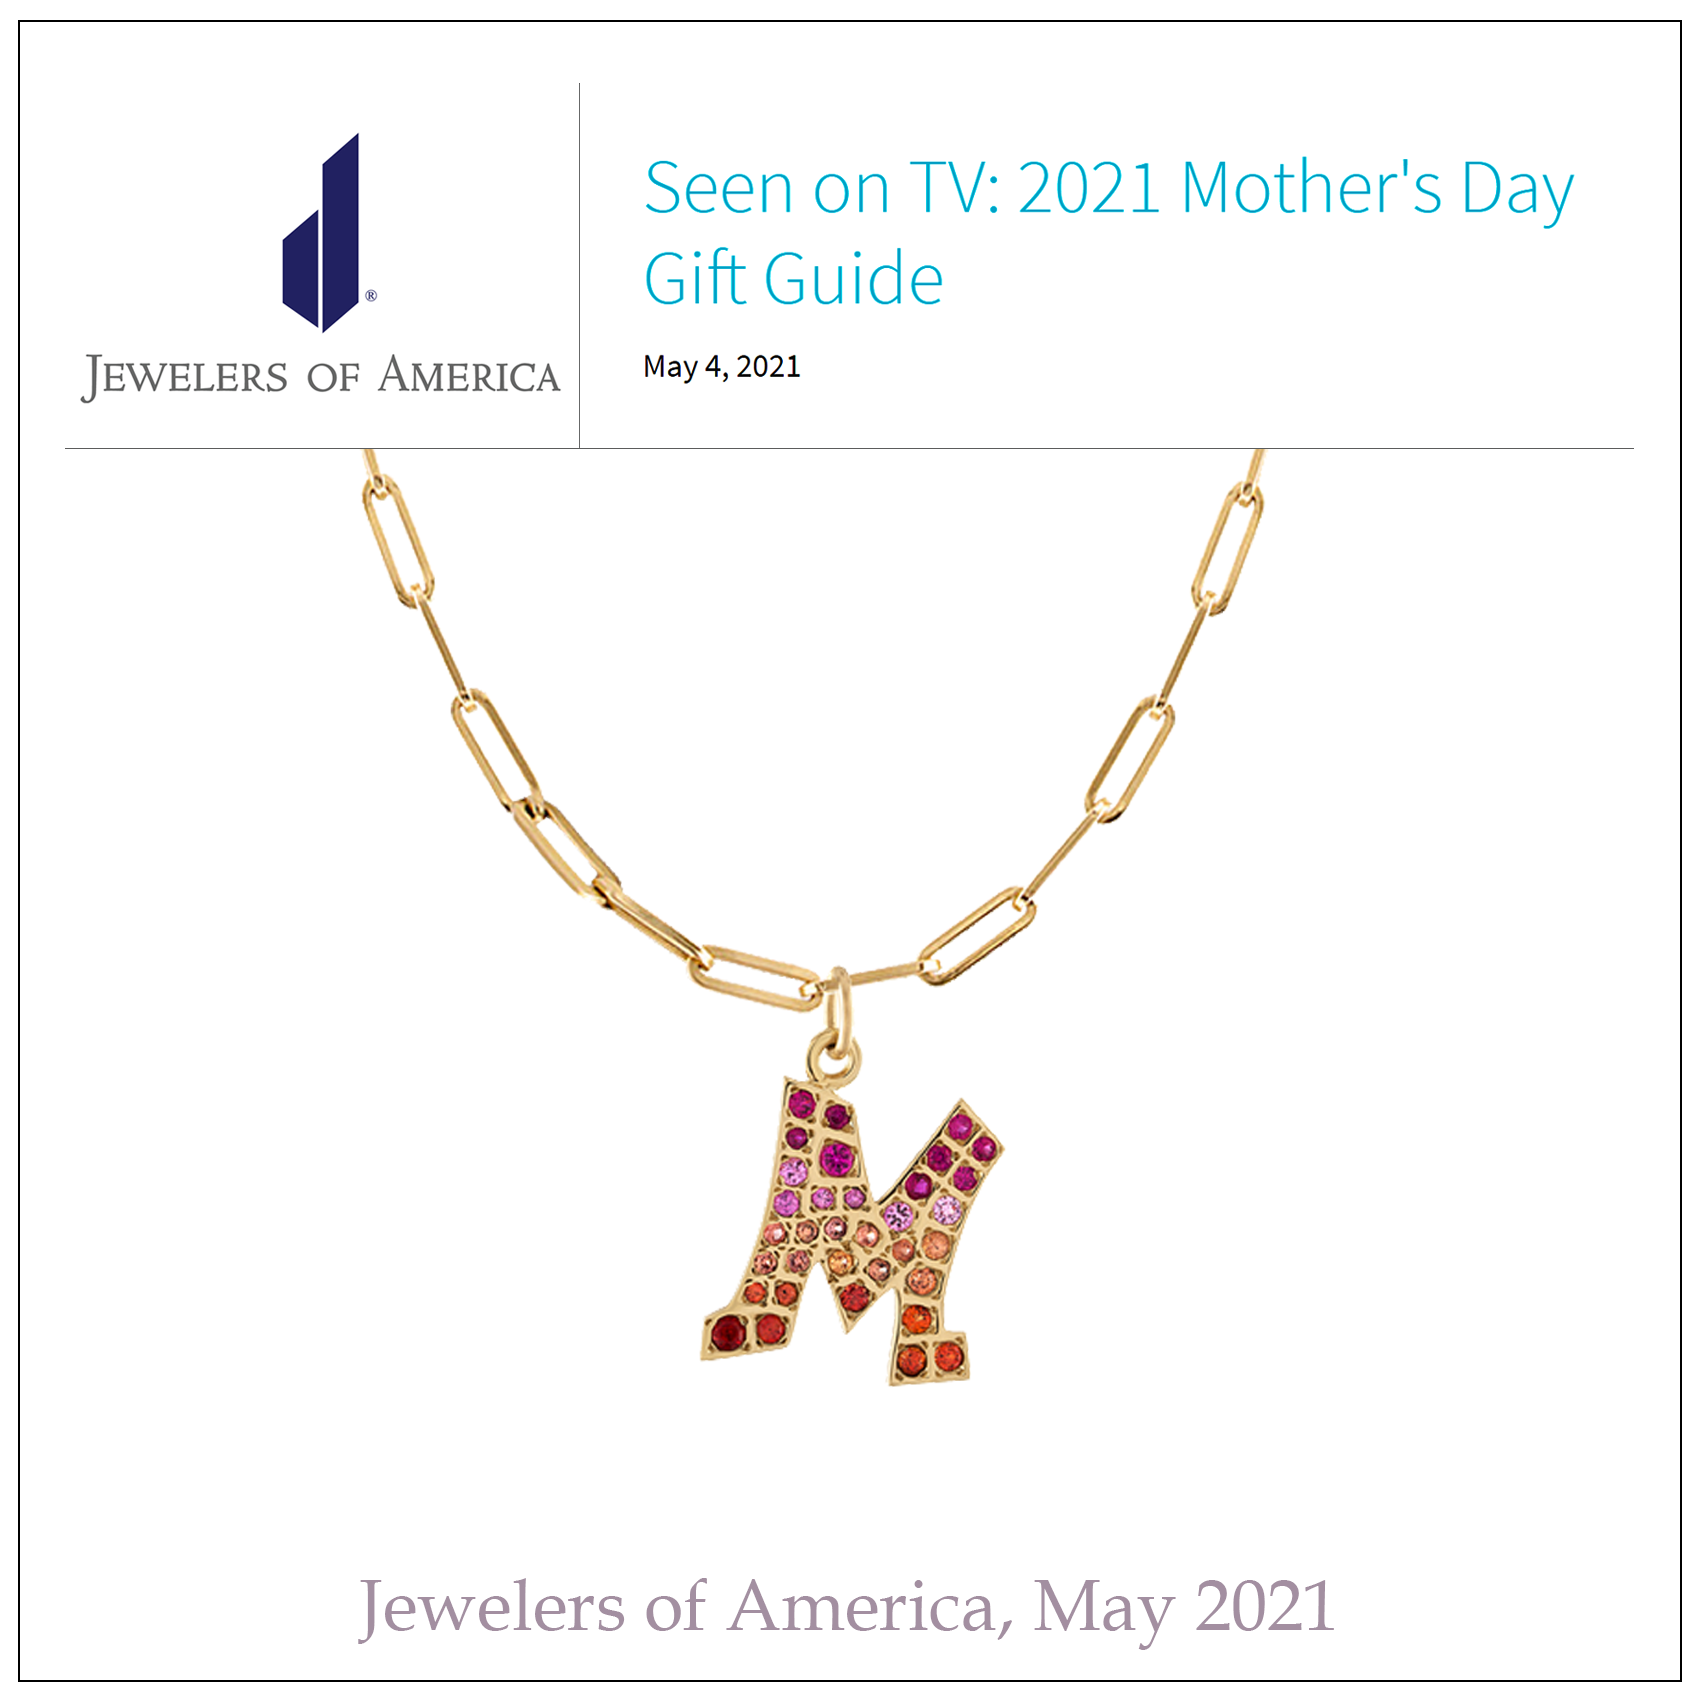 jewelers-of-america-may-2021.png